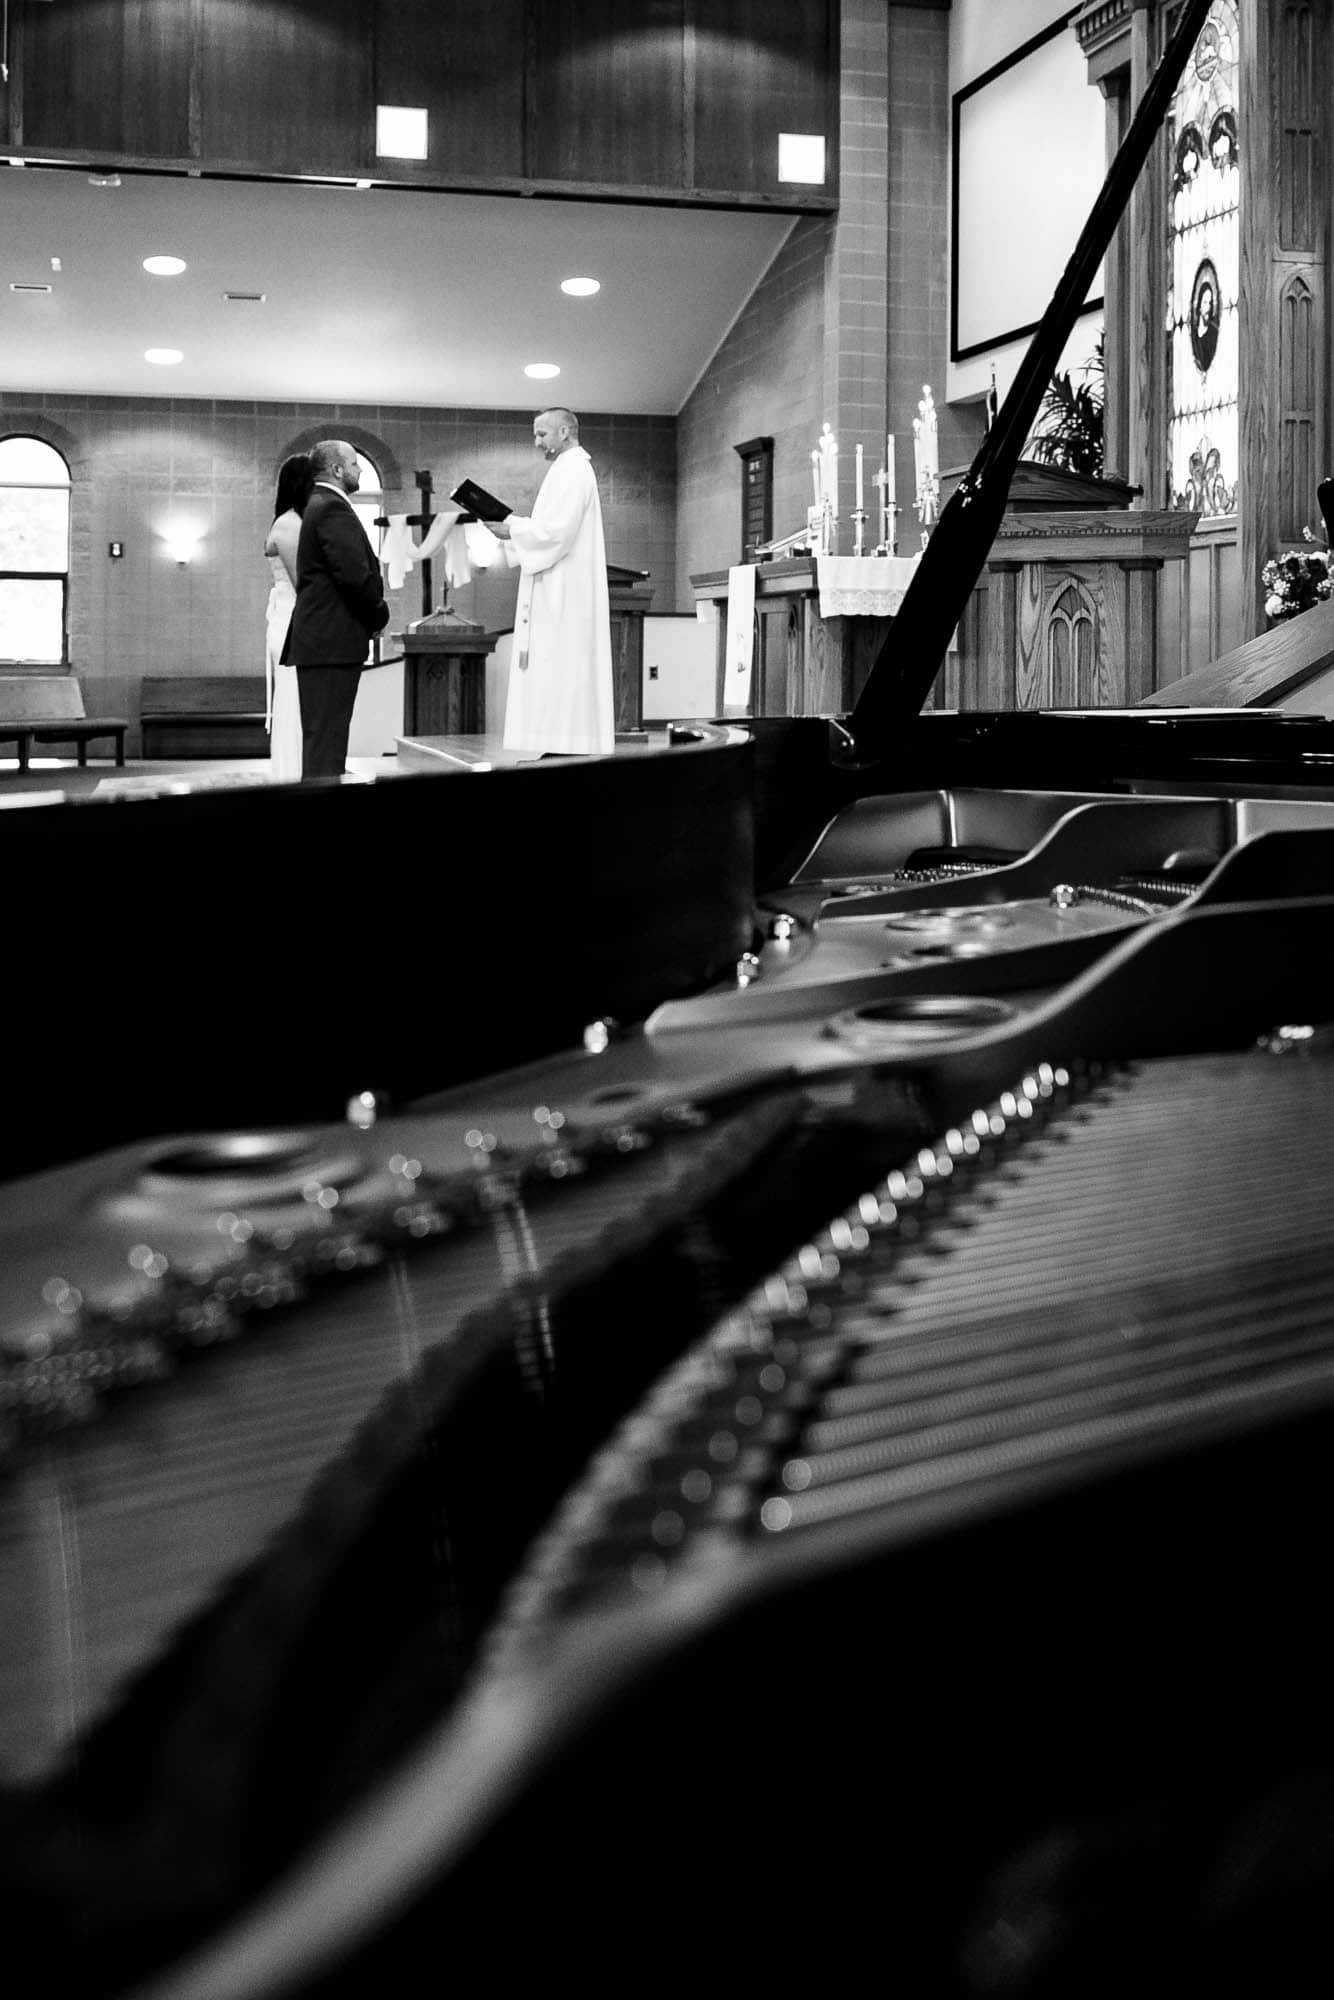 Piano at wedding by La Crosse, WI Photographer Jeff Wiswell